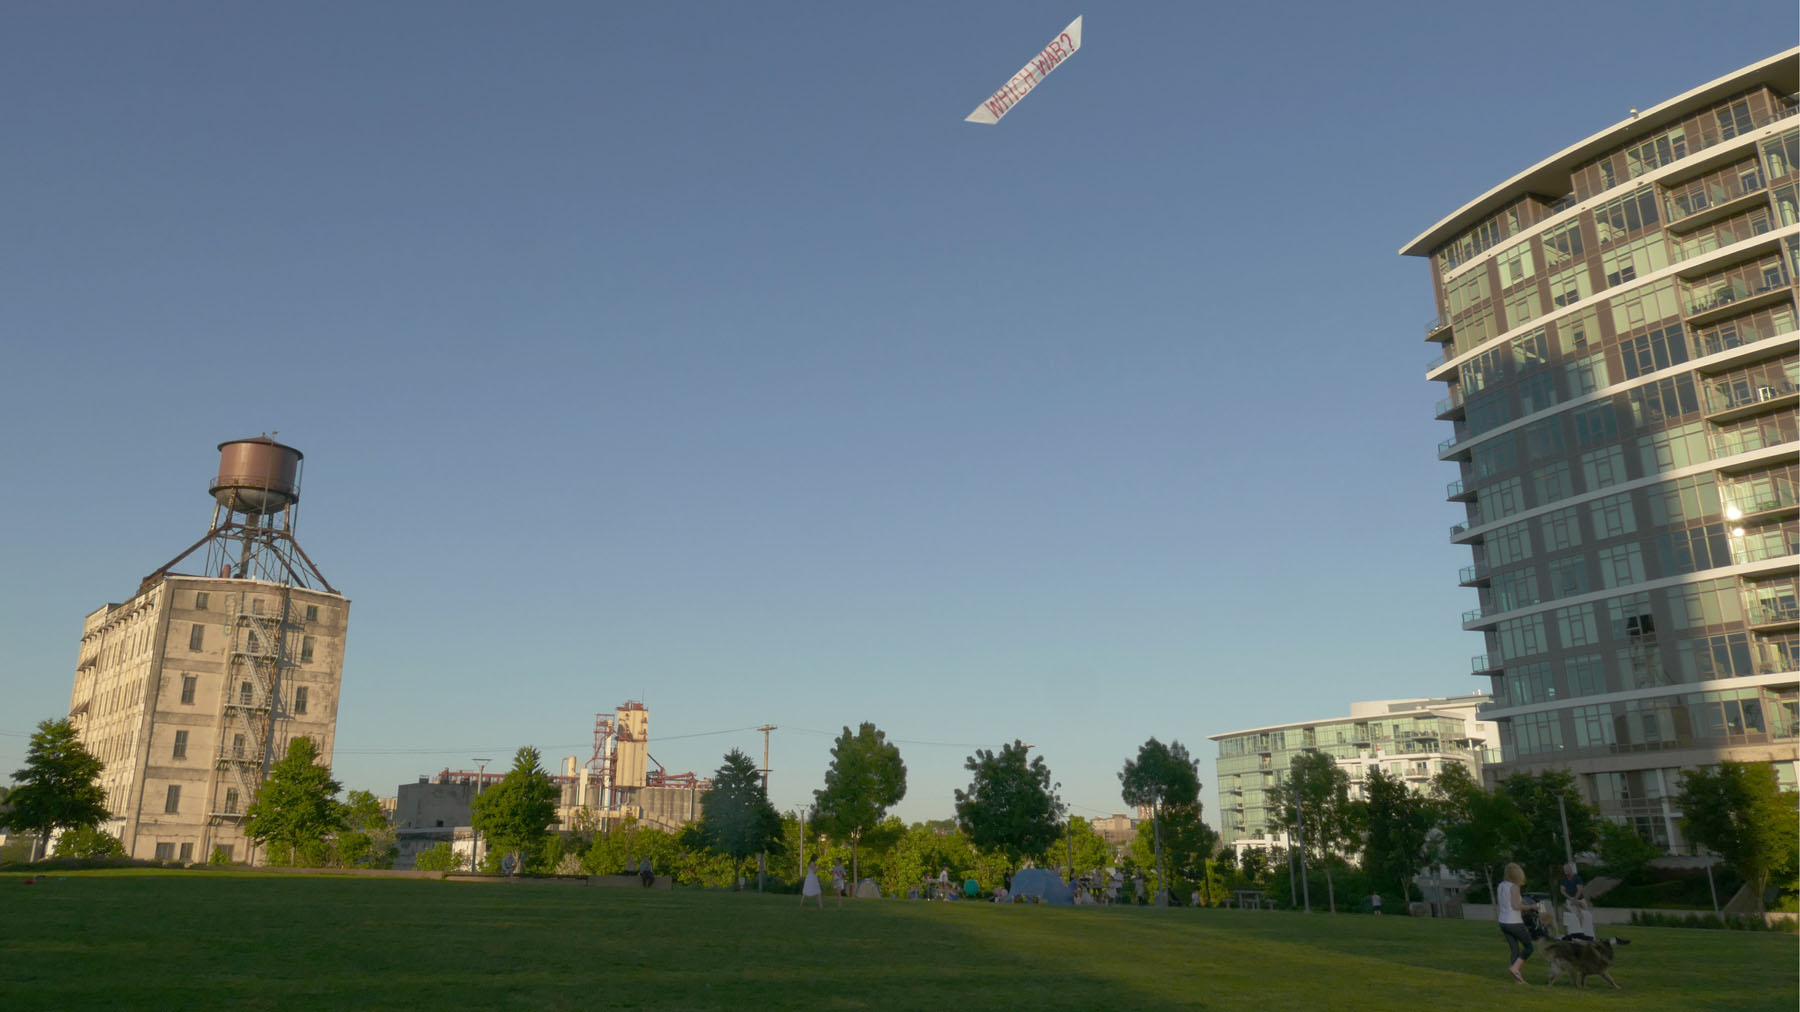 Flying signs: kite banners